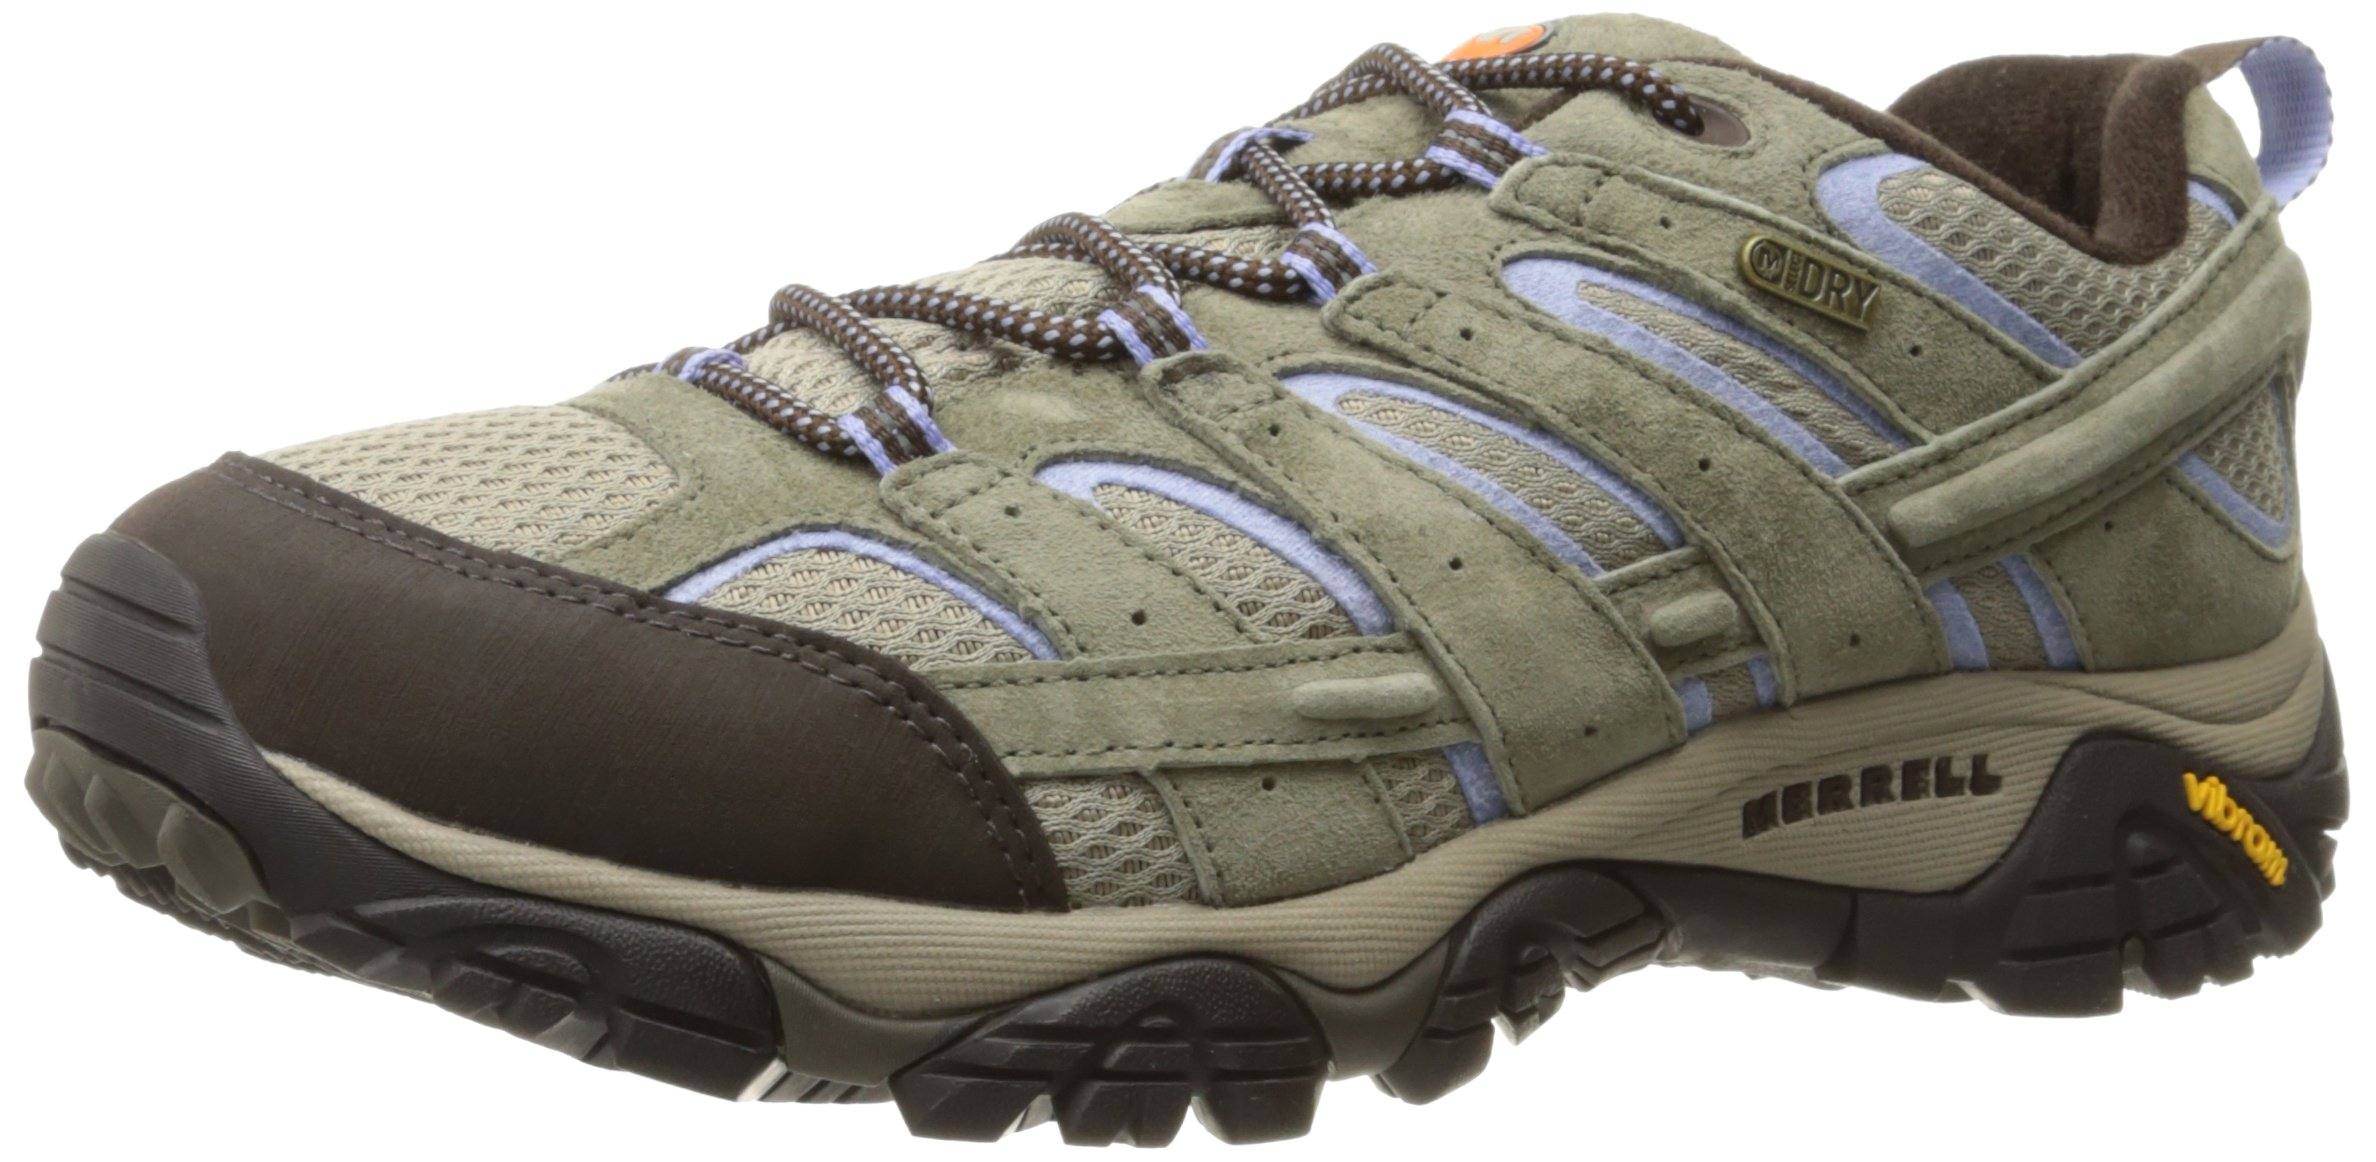 Merrell Women's Moab 2 Waterproof Hiking Shoe, Dusty Olive, 8 M US